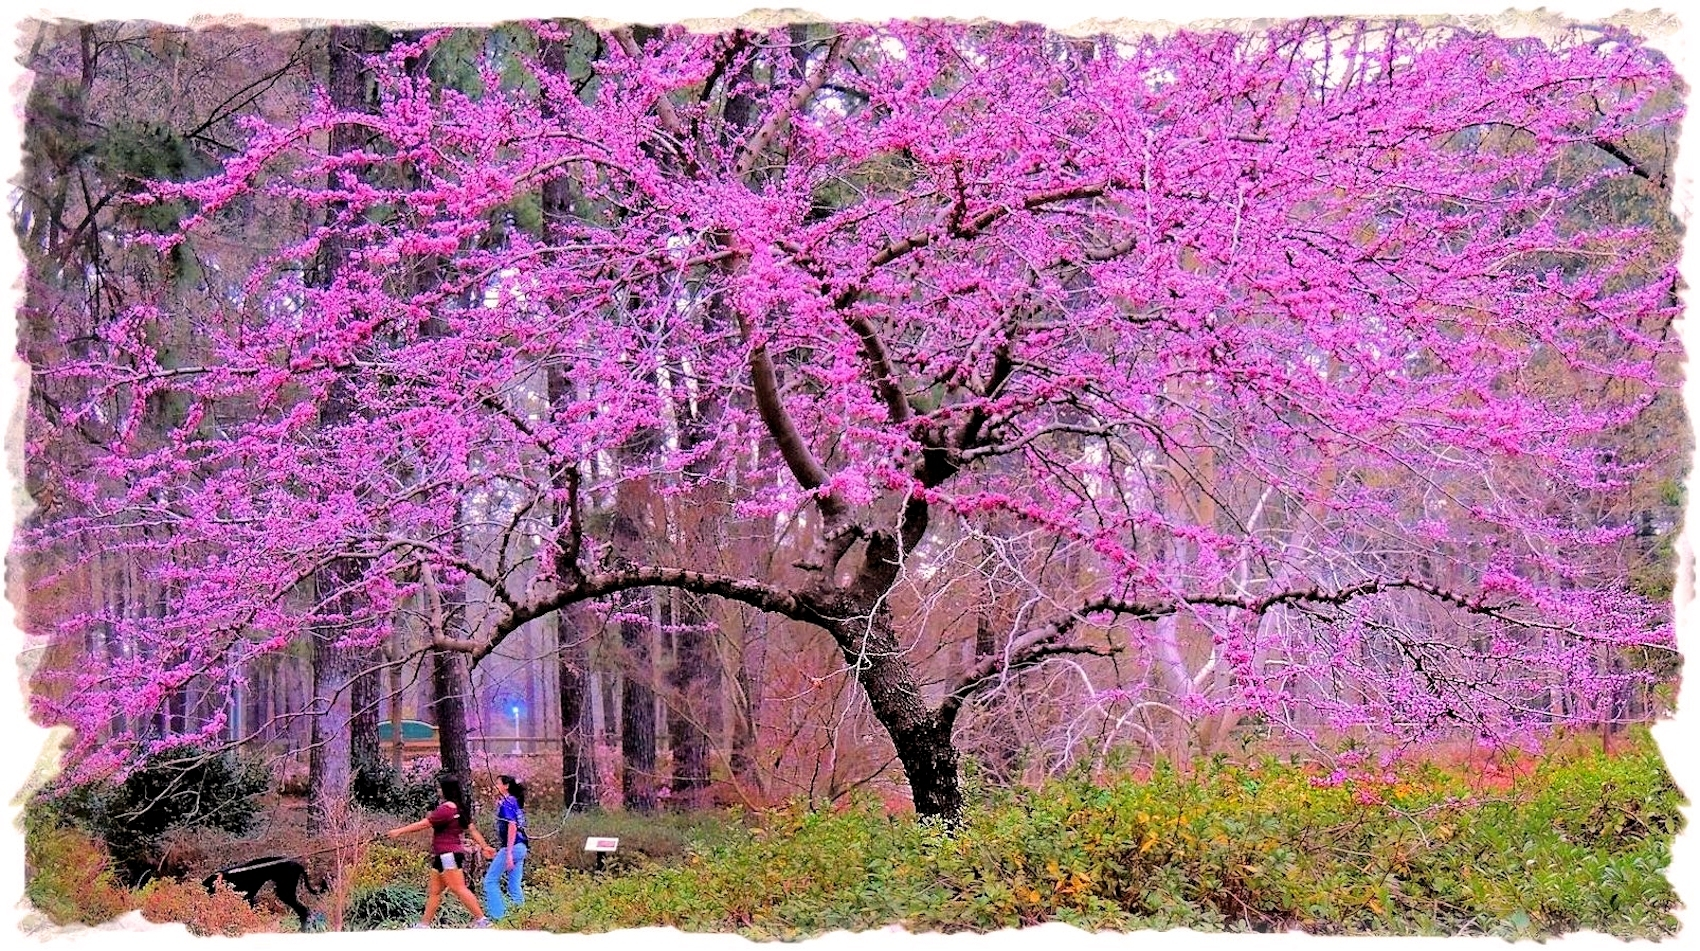 Redbud Tree on the Circle Ring at Ruby Mize Azalea Garden in Historic Nacogdoches